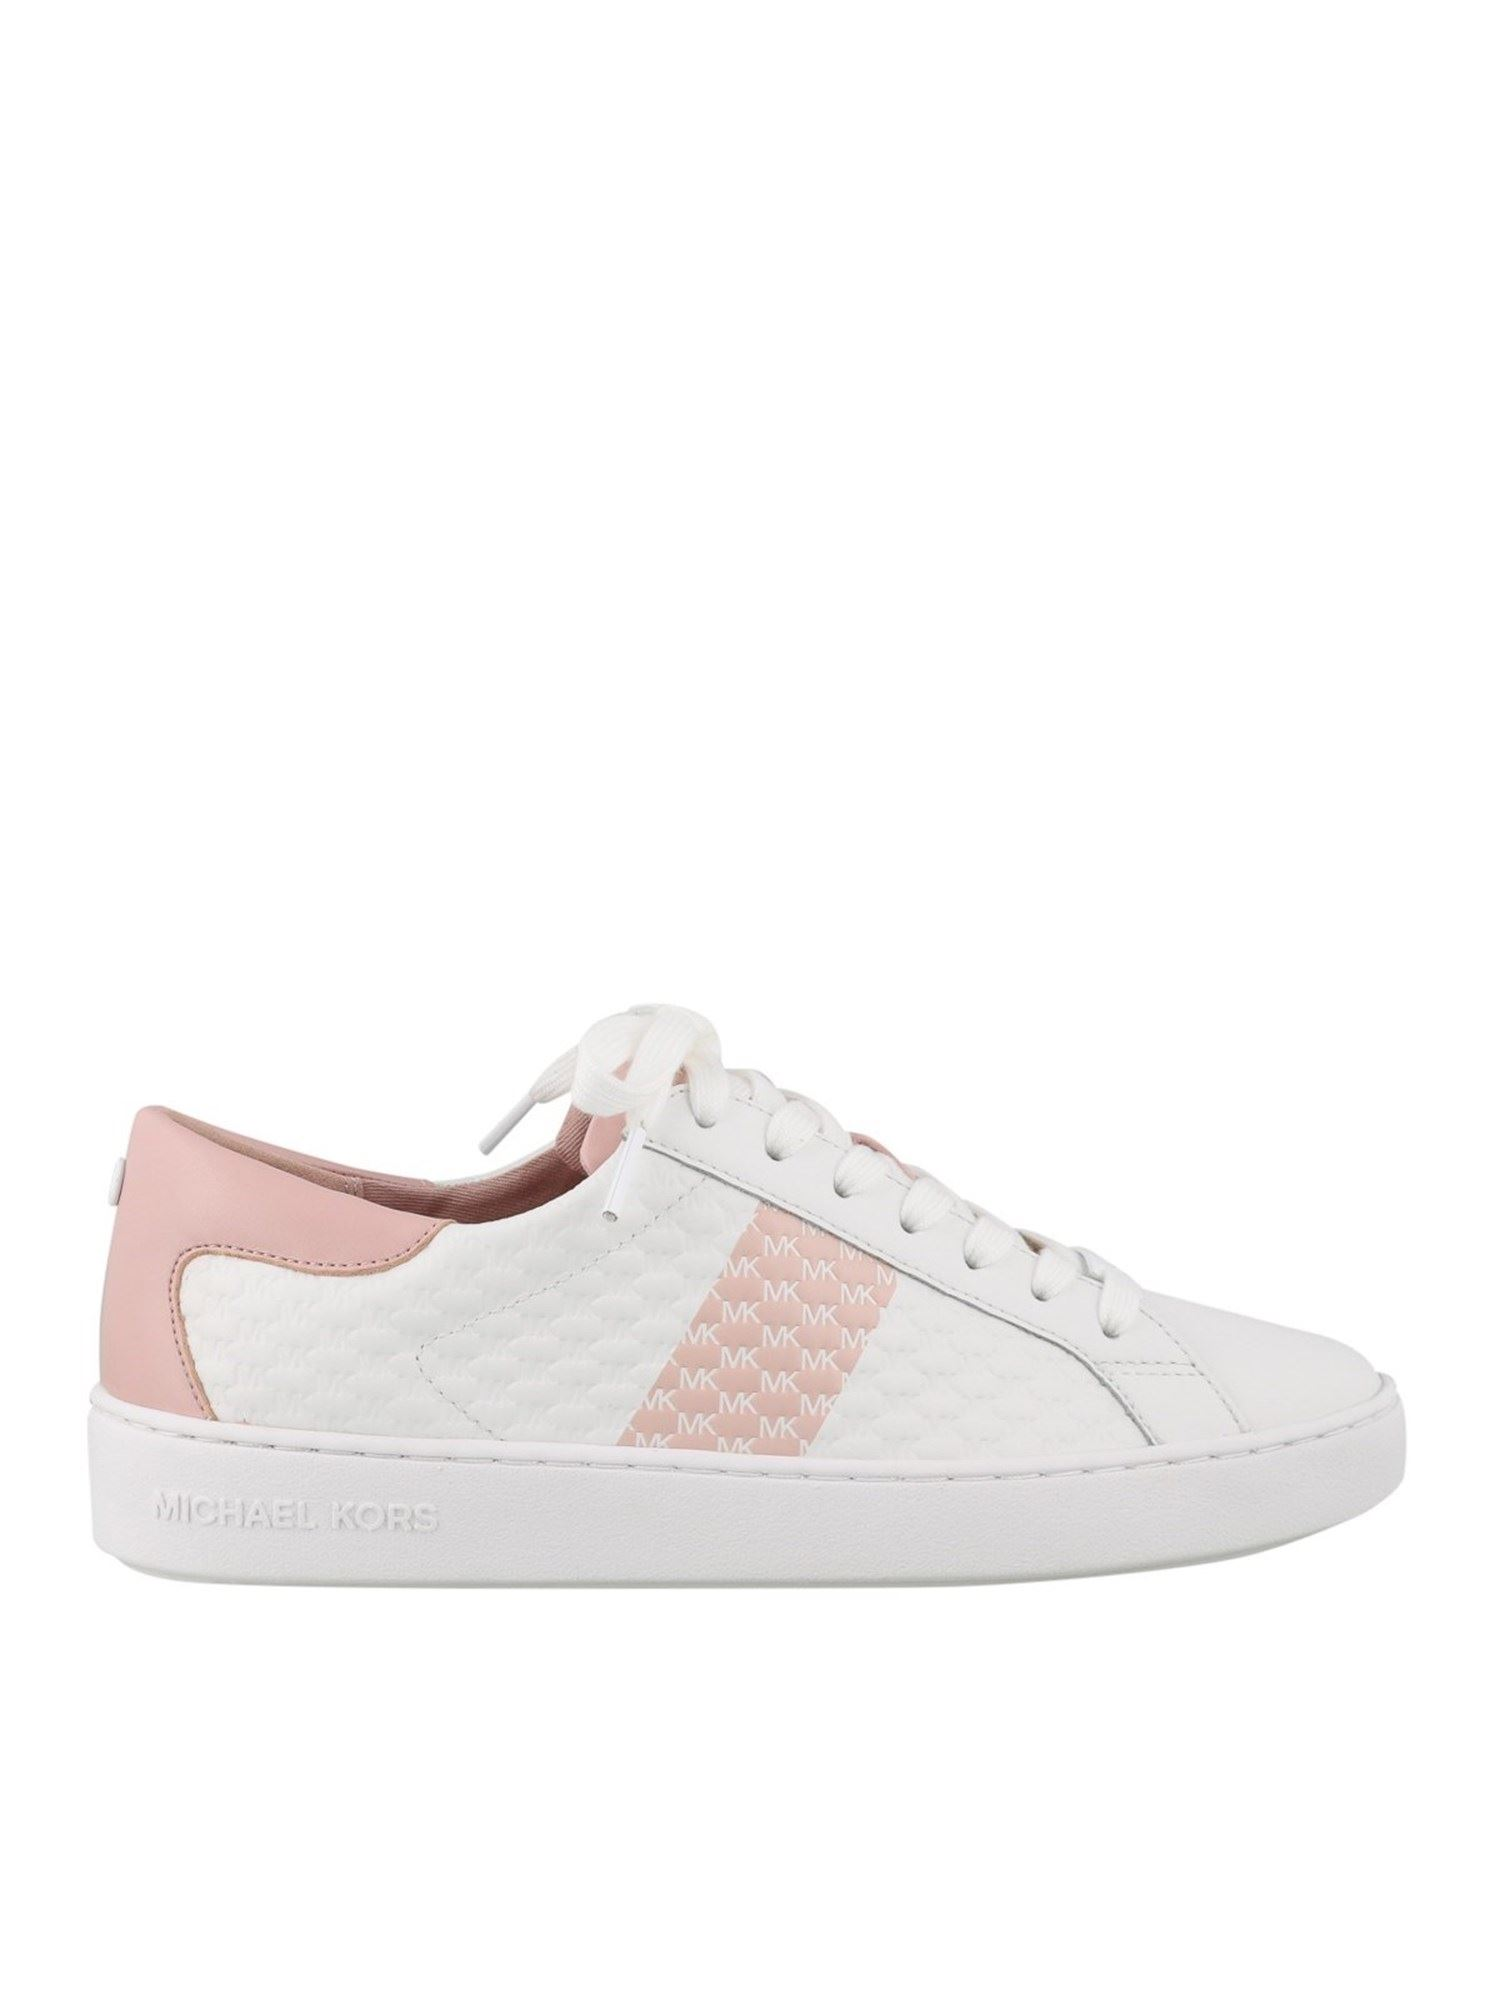 Michael Kors COLBY SNEAKERS IN WHITE AND PINK